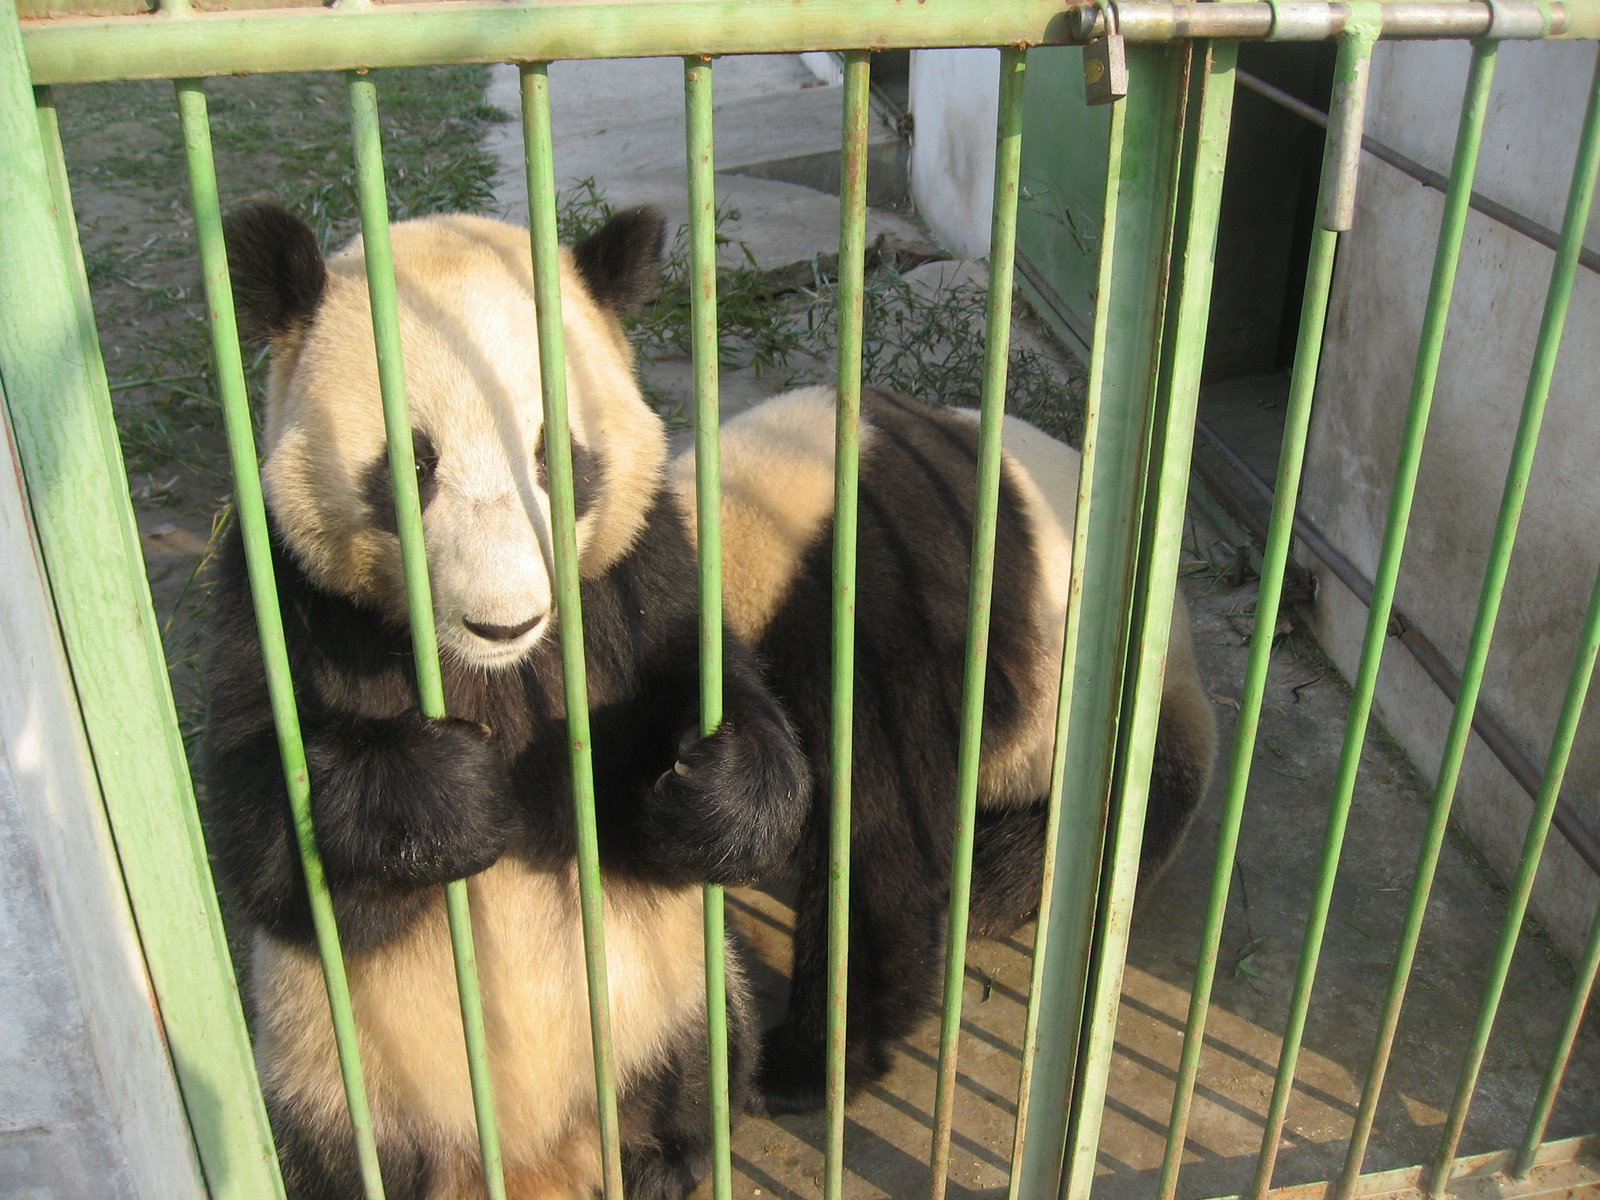 Panda behind bars